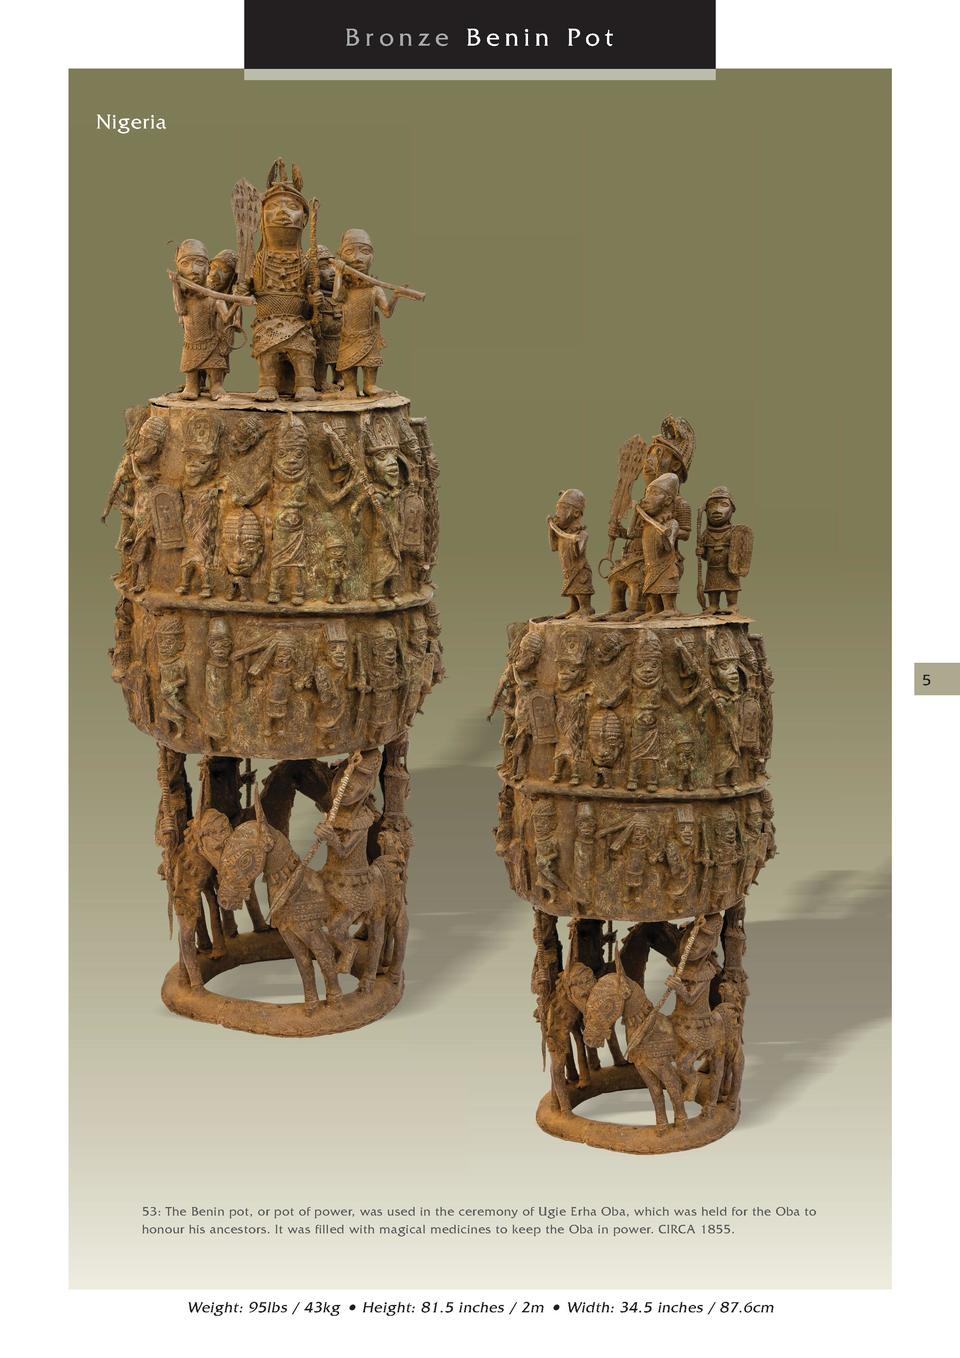 Bronze Benin Pot Nigeria  5  53  The Benin pot, or pot of power, was used in the ceremony of Ugie Erha Oba, which was held...